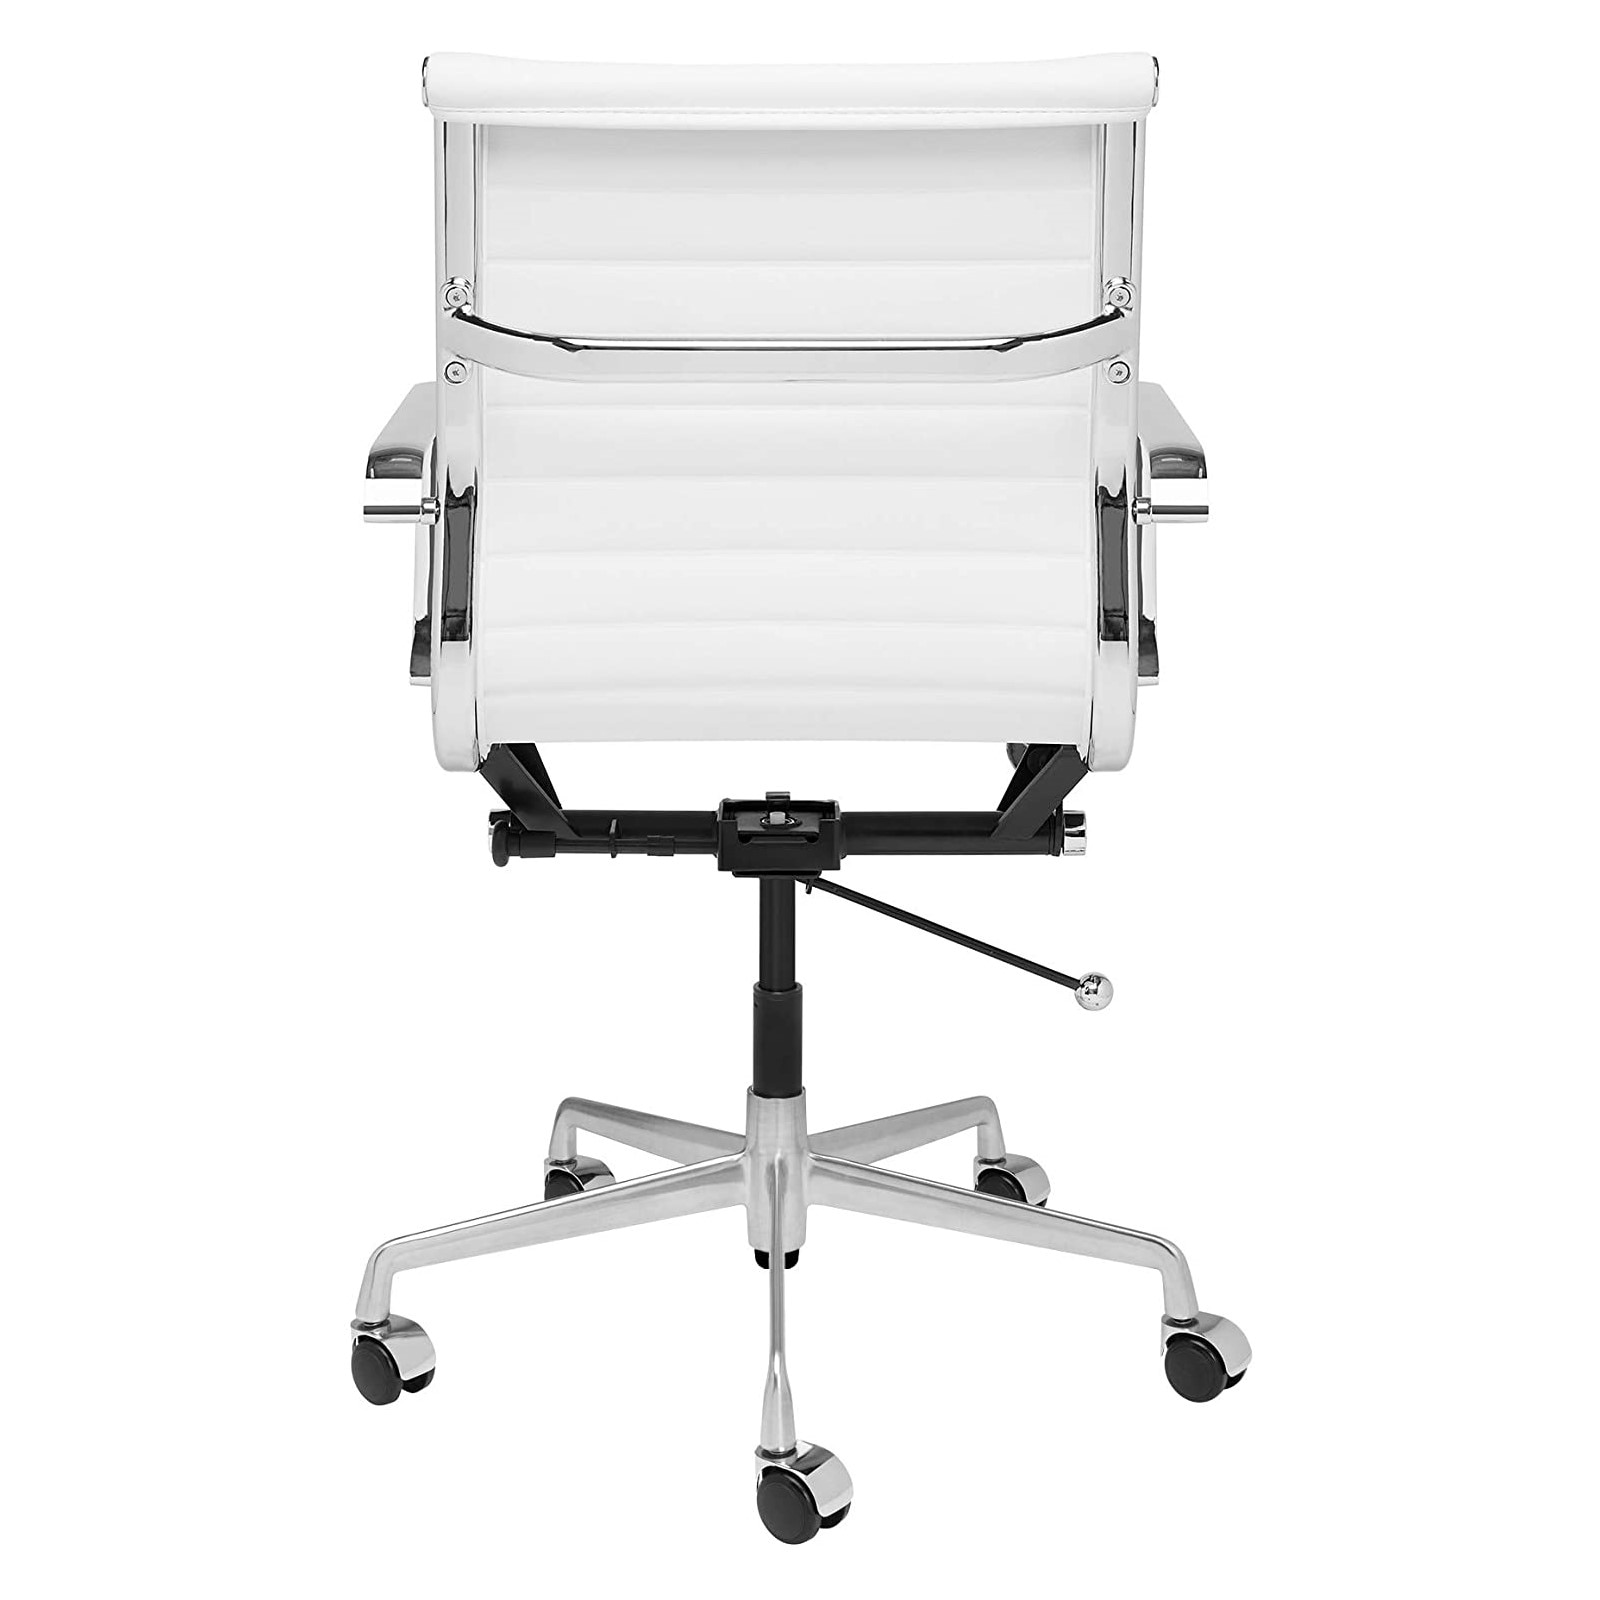 Hd74541d9fb294b43840820cc1f979c4eY - Furgle Executive Office Chair Mid Back PU Leather with Arms Rest Tilt Gaming Chair Adjustable Height with Wheels Swivel Chairs